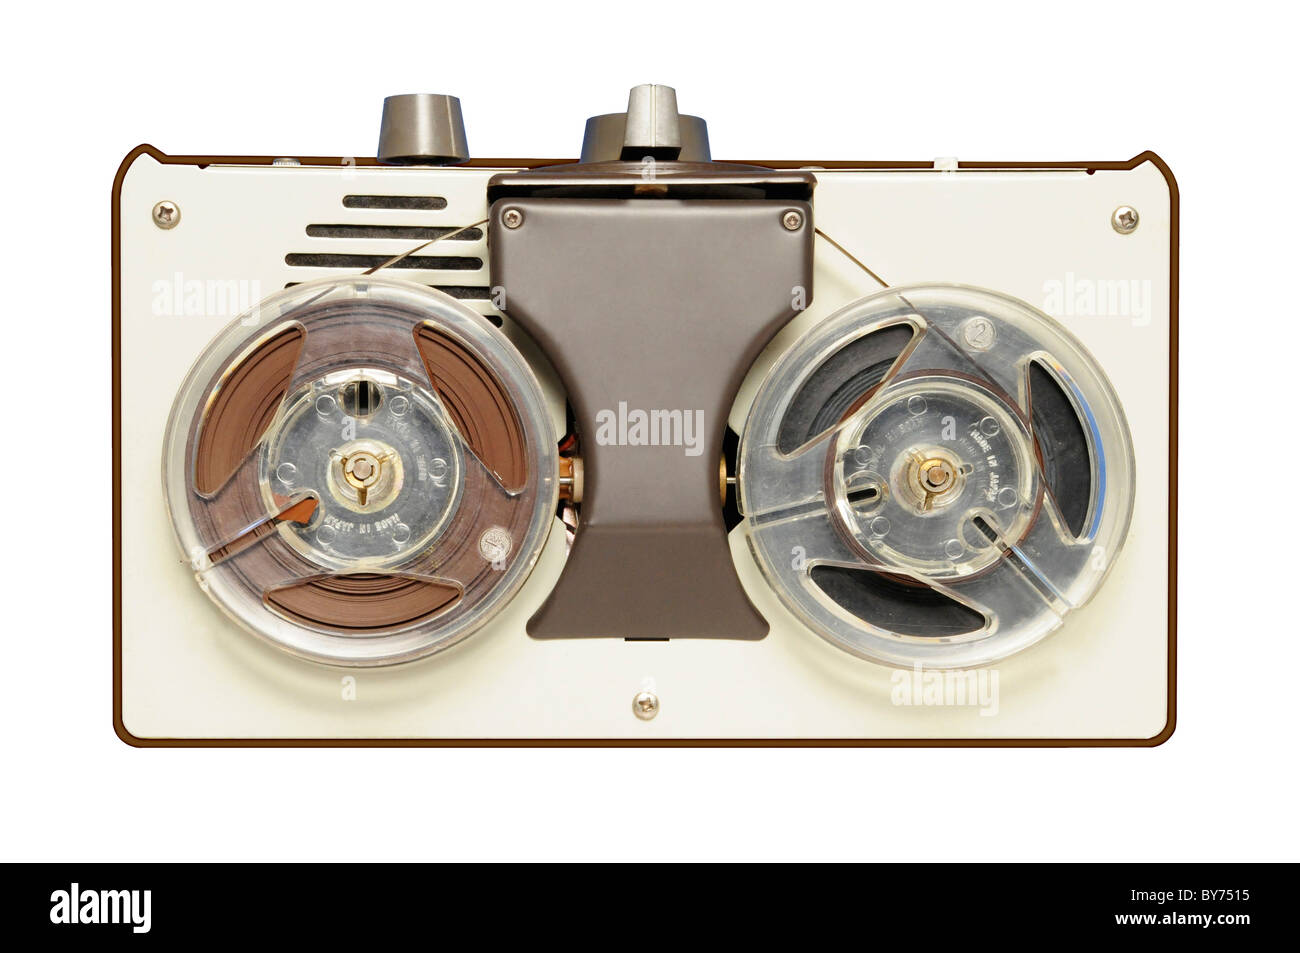 Vintage reel-to-reel tape recorder circa 1967, AIWA brand, made in Japan. Brandname has been removed from photo. - Stock Image